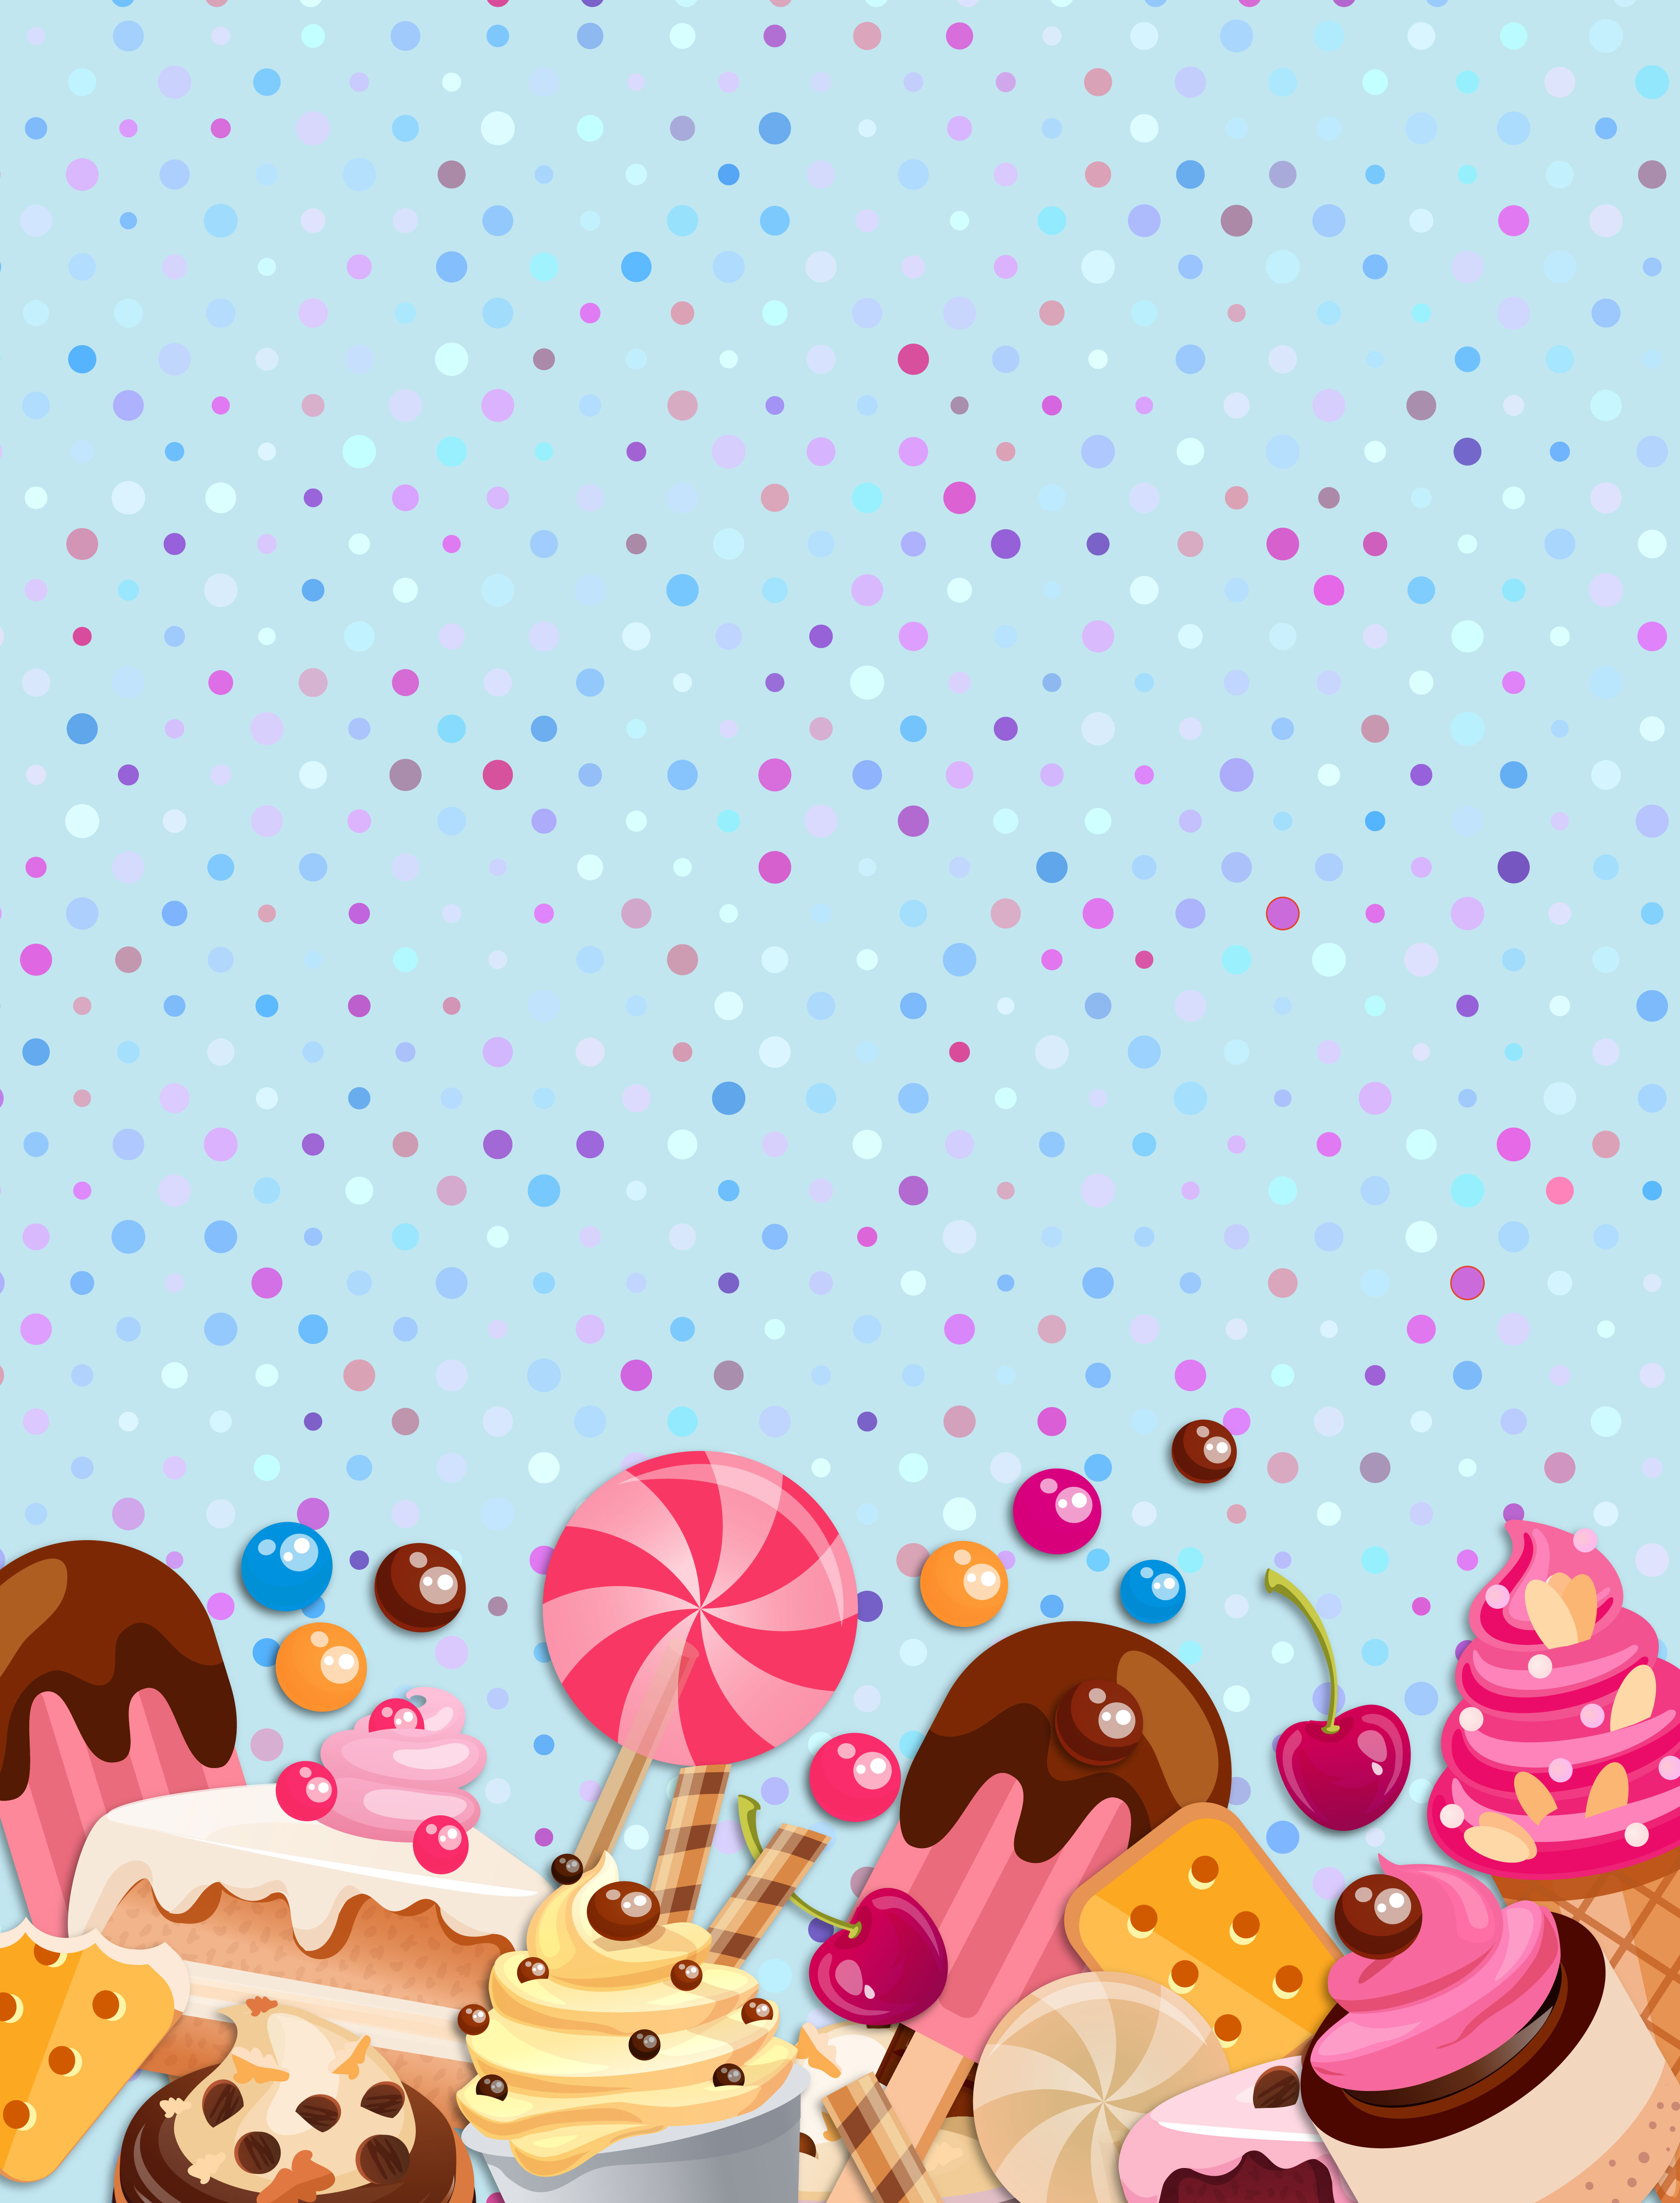 Vector Cartoon Fantasy Candy Background Cartoon Dream Child Background Image For Free Download